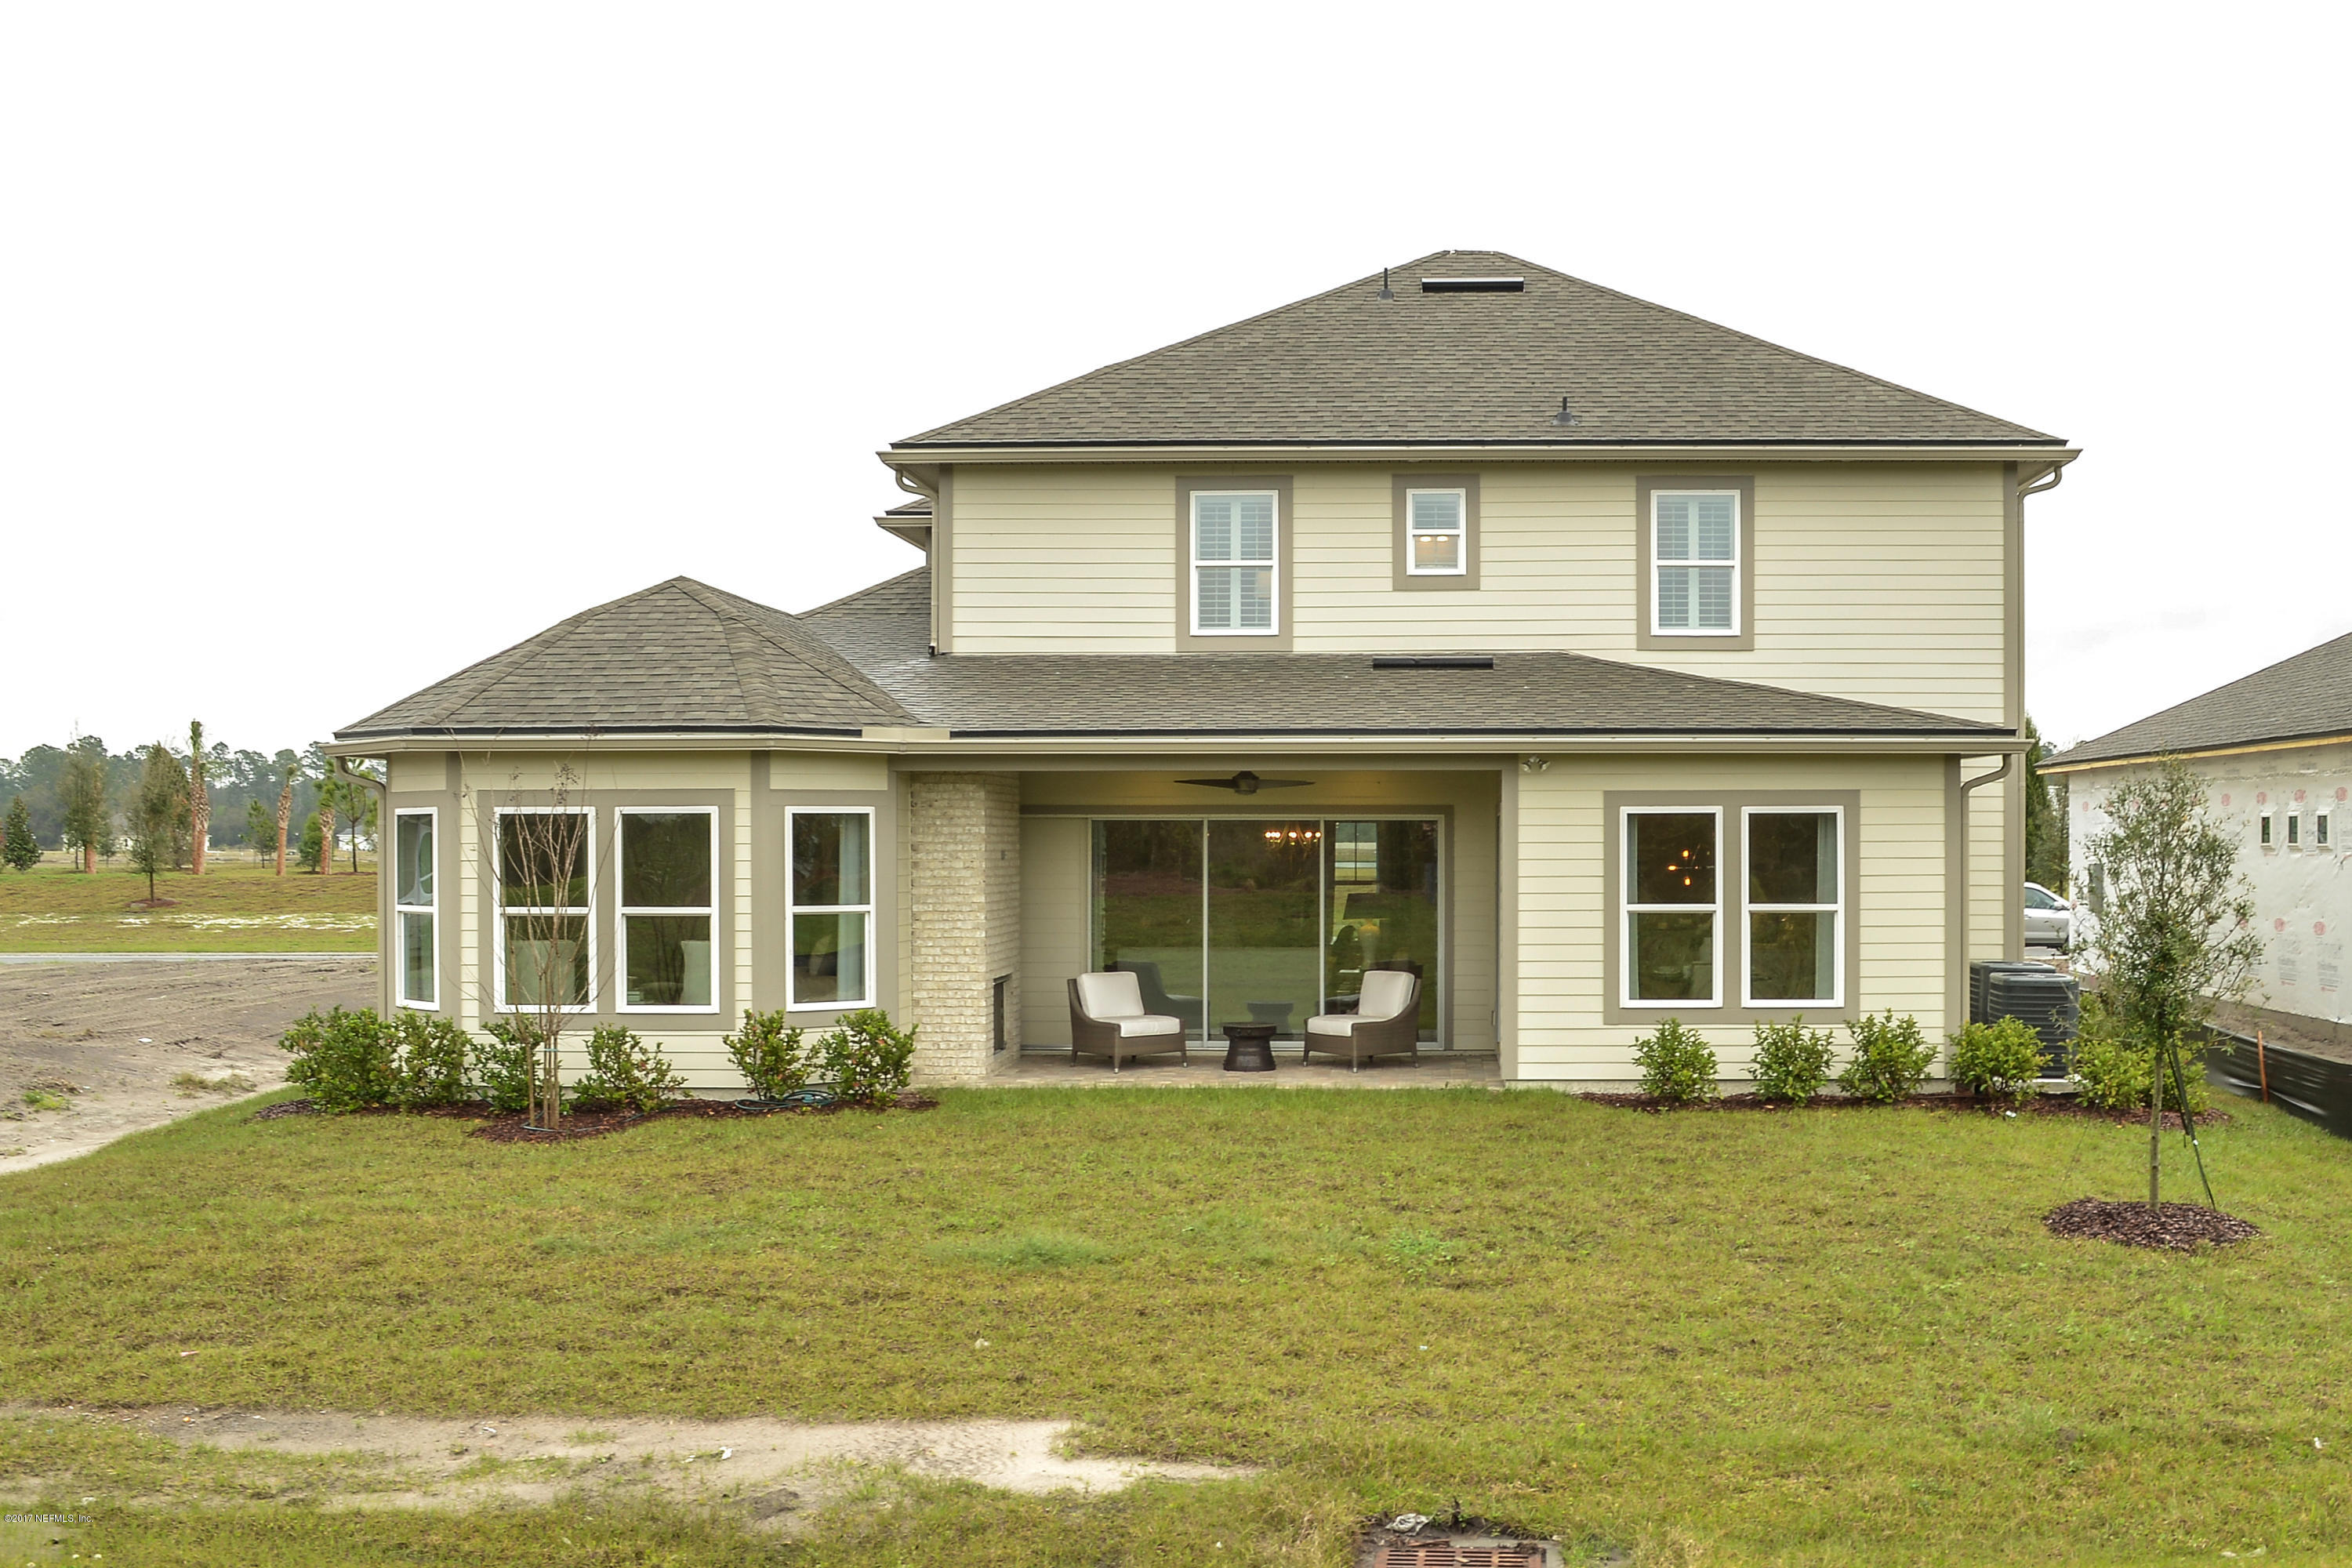 65 EVENSHADE, ST AUGUSTINE, FLORIDA 32092, 5 Bedrooms Bedrooms, ,4 BathroomsBathrooms,Residential - single family,For sale,EVENSHADE,900288